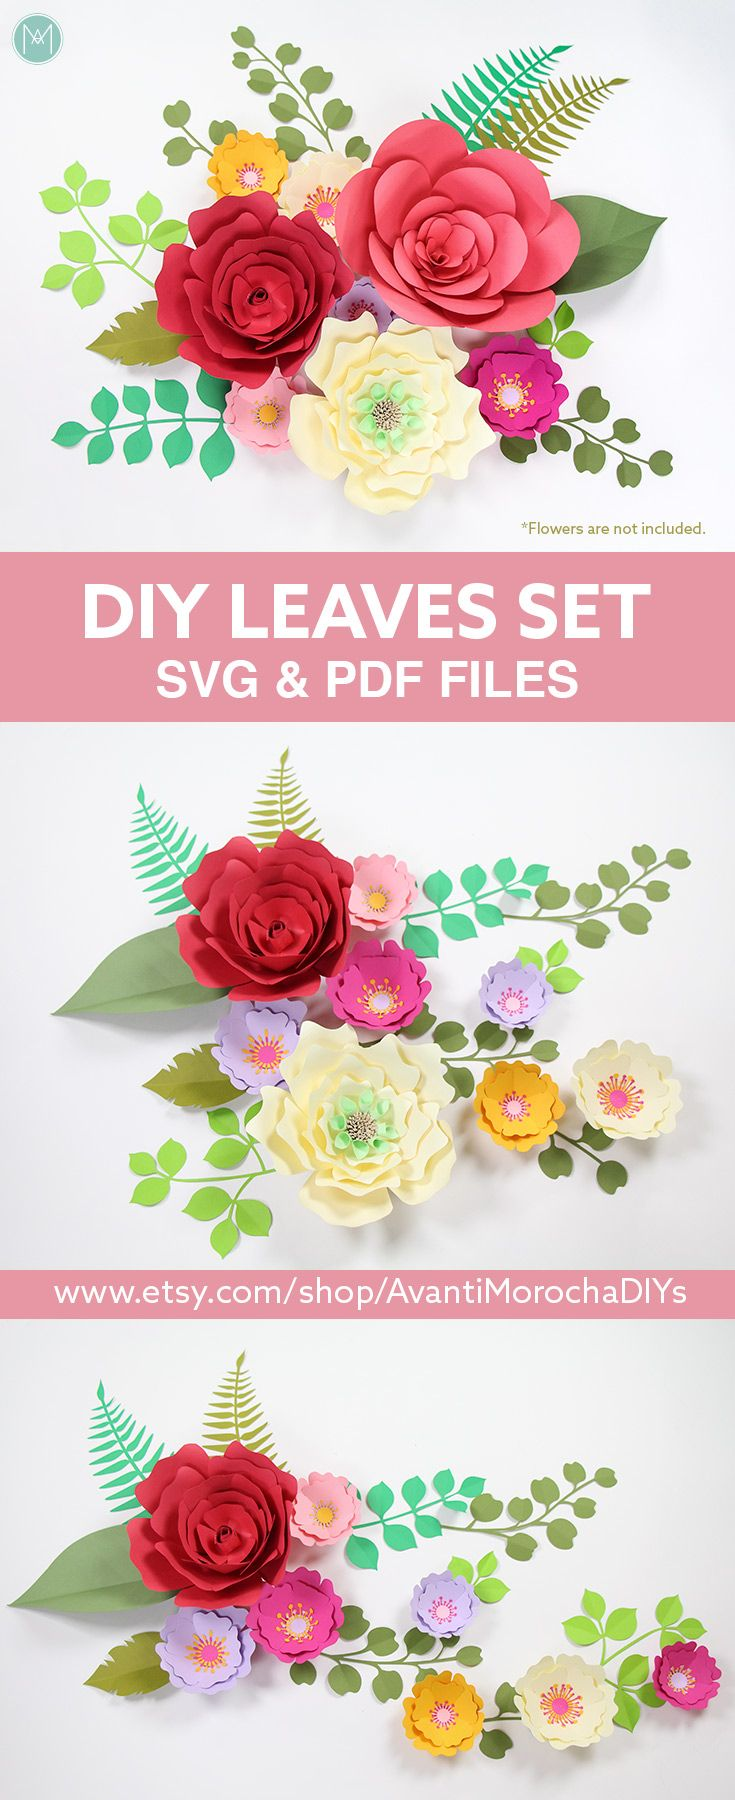 Diy Leaves Set For Giant Paper Flowers Svg And Pdf Files